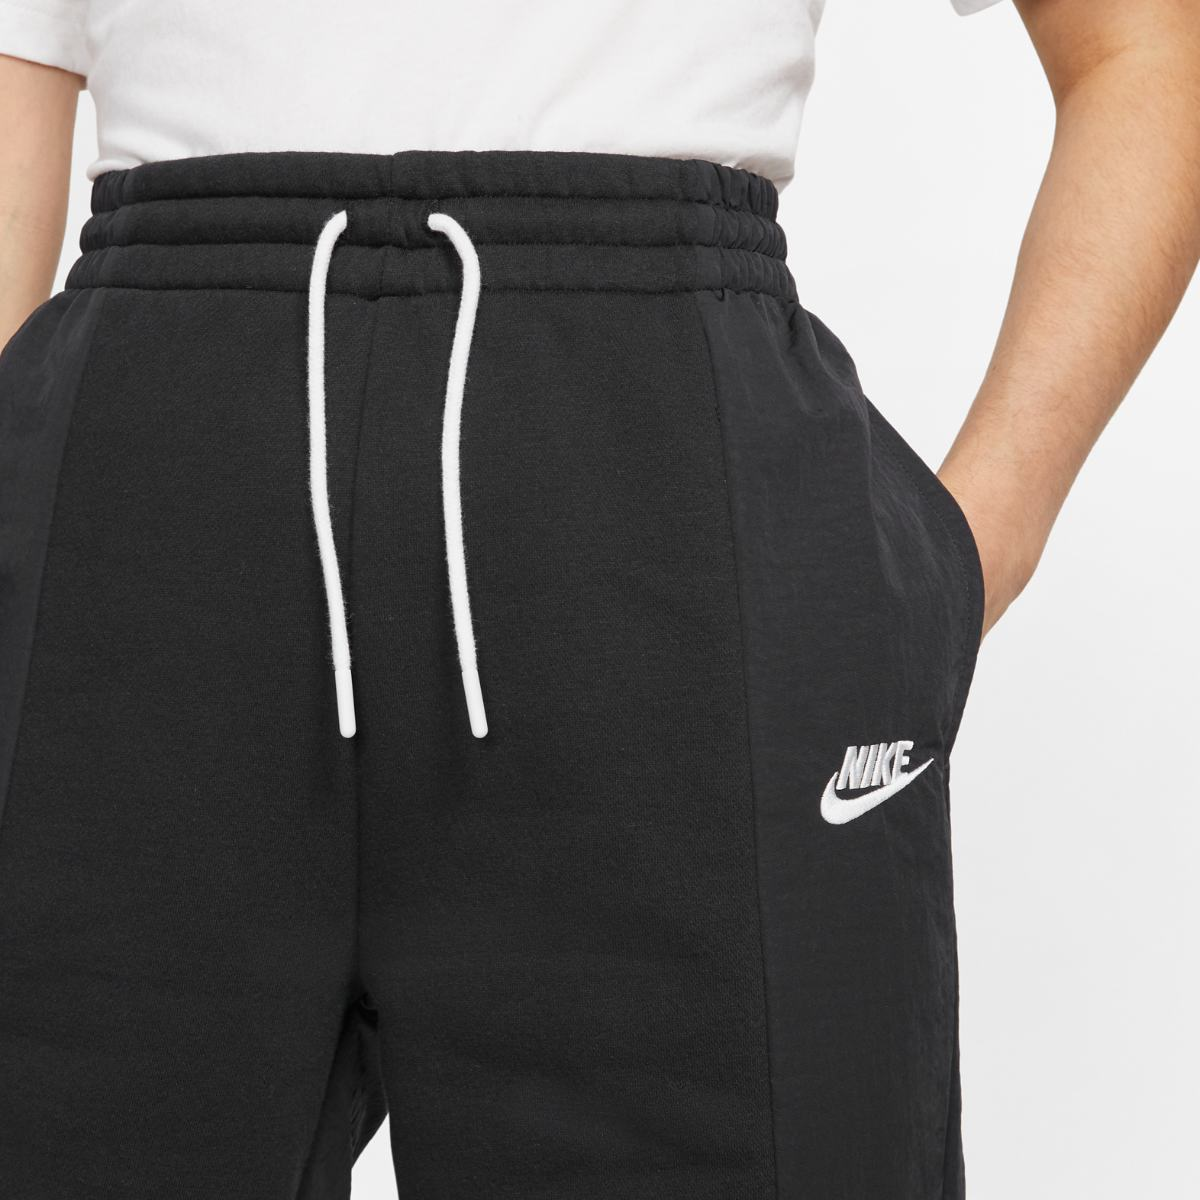 Брюки NIKE W NSW ICN CLSH PANT MIXED OS CJ2048-010 фото